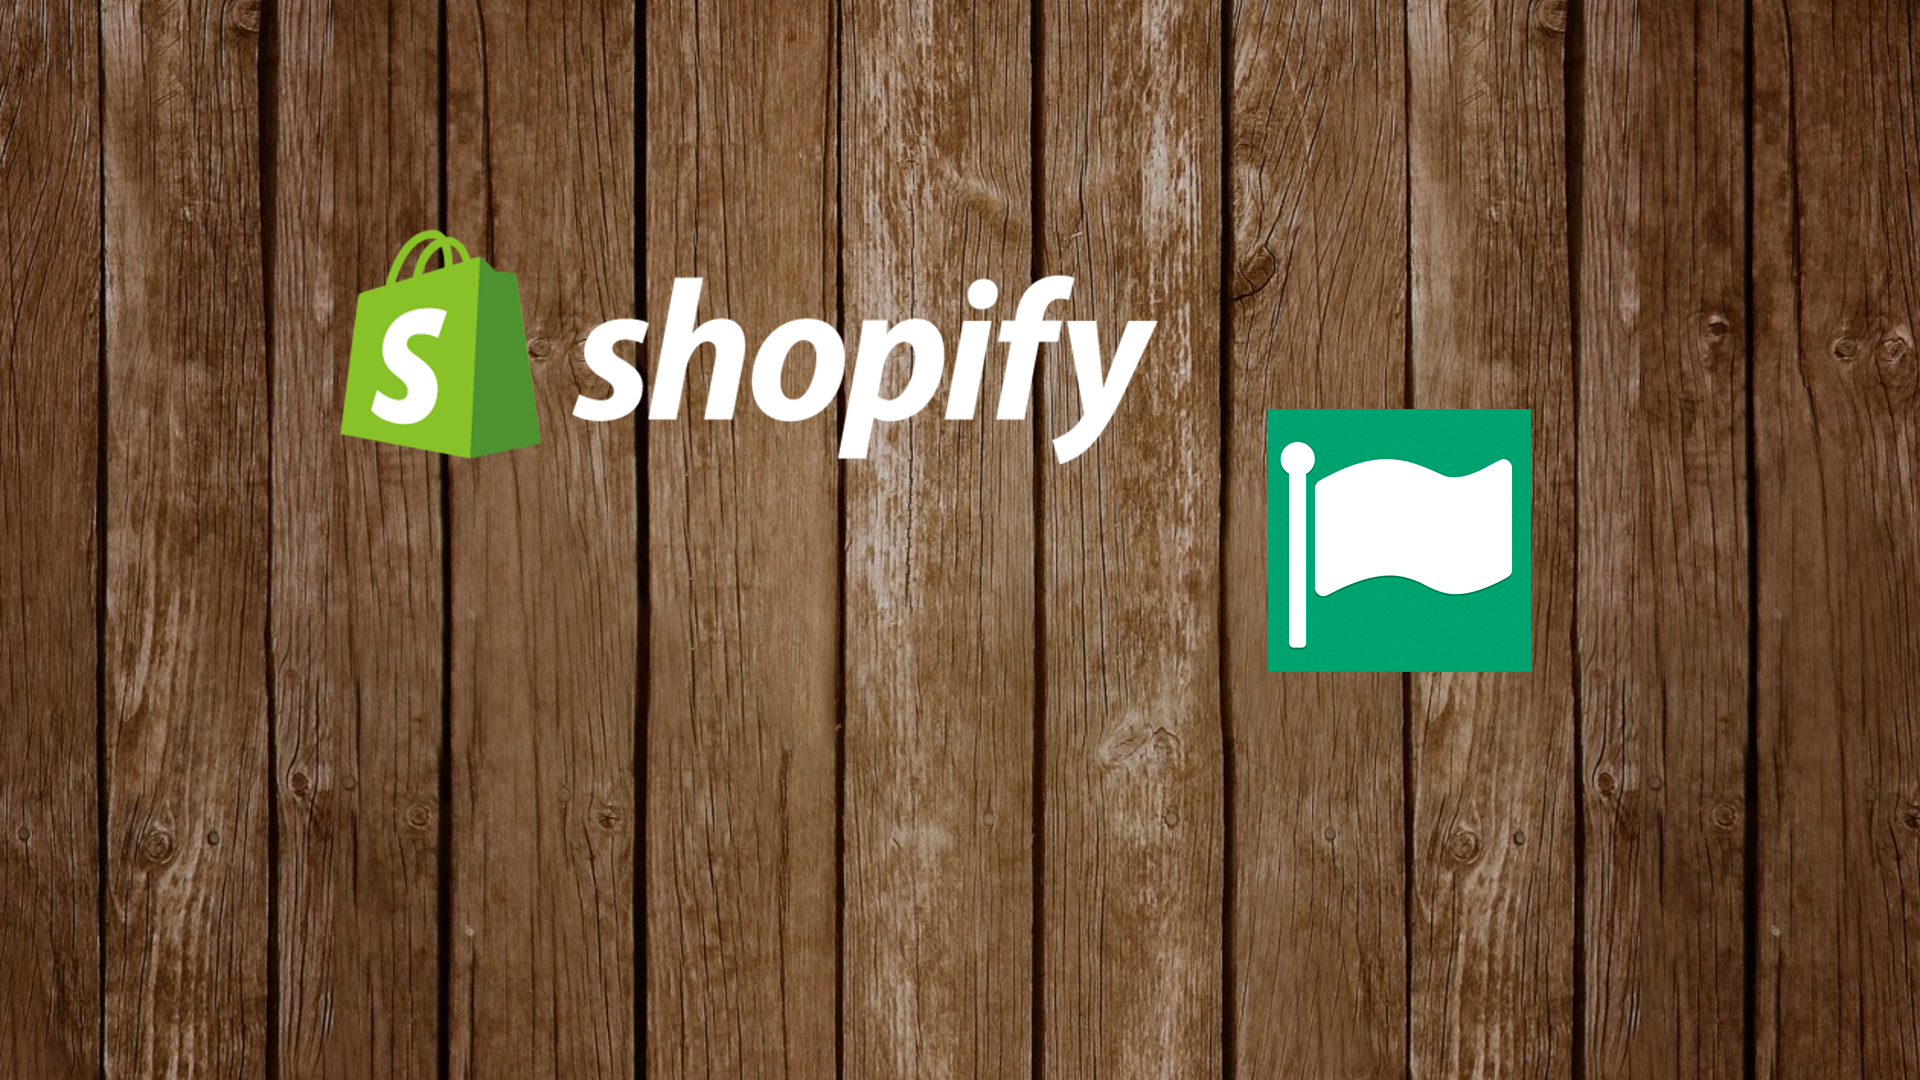 Font-Awesome-e-Shopify-come-inserire-icone-Shopify